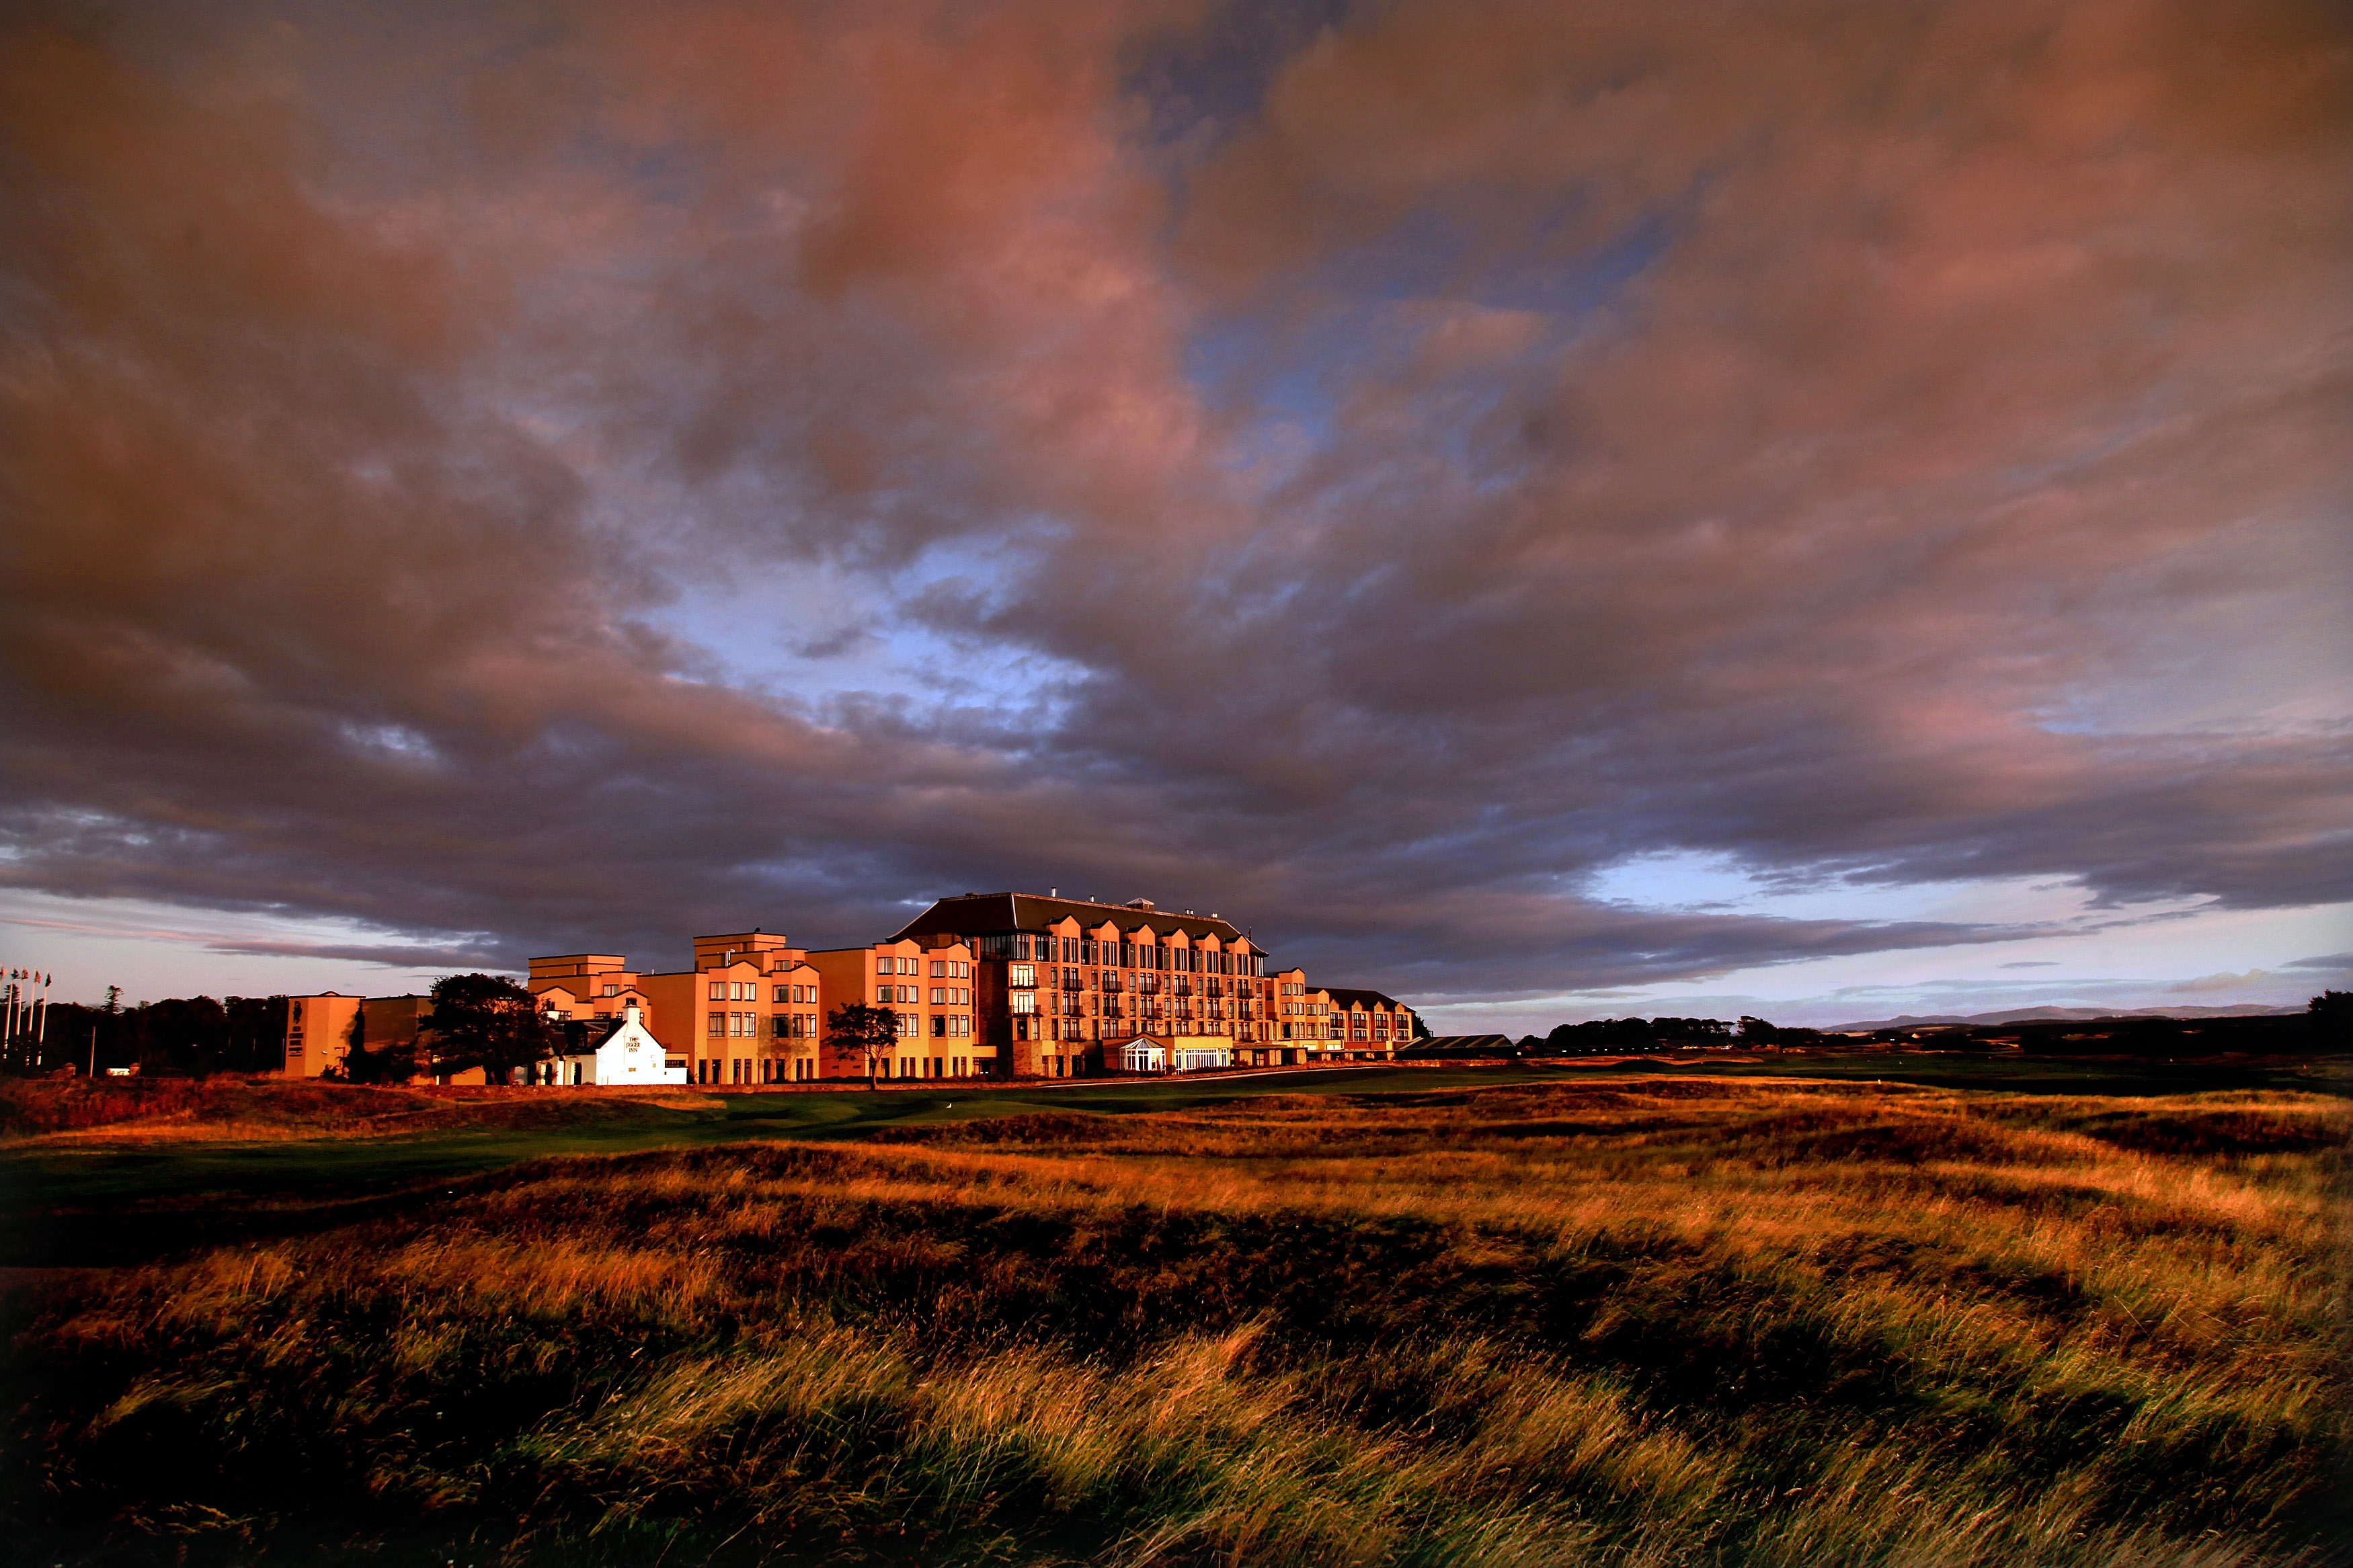 A view of the Old Course Hotel situated along the 17th fairway at St. Andrews.